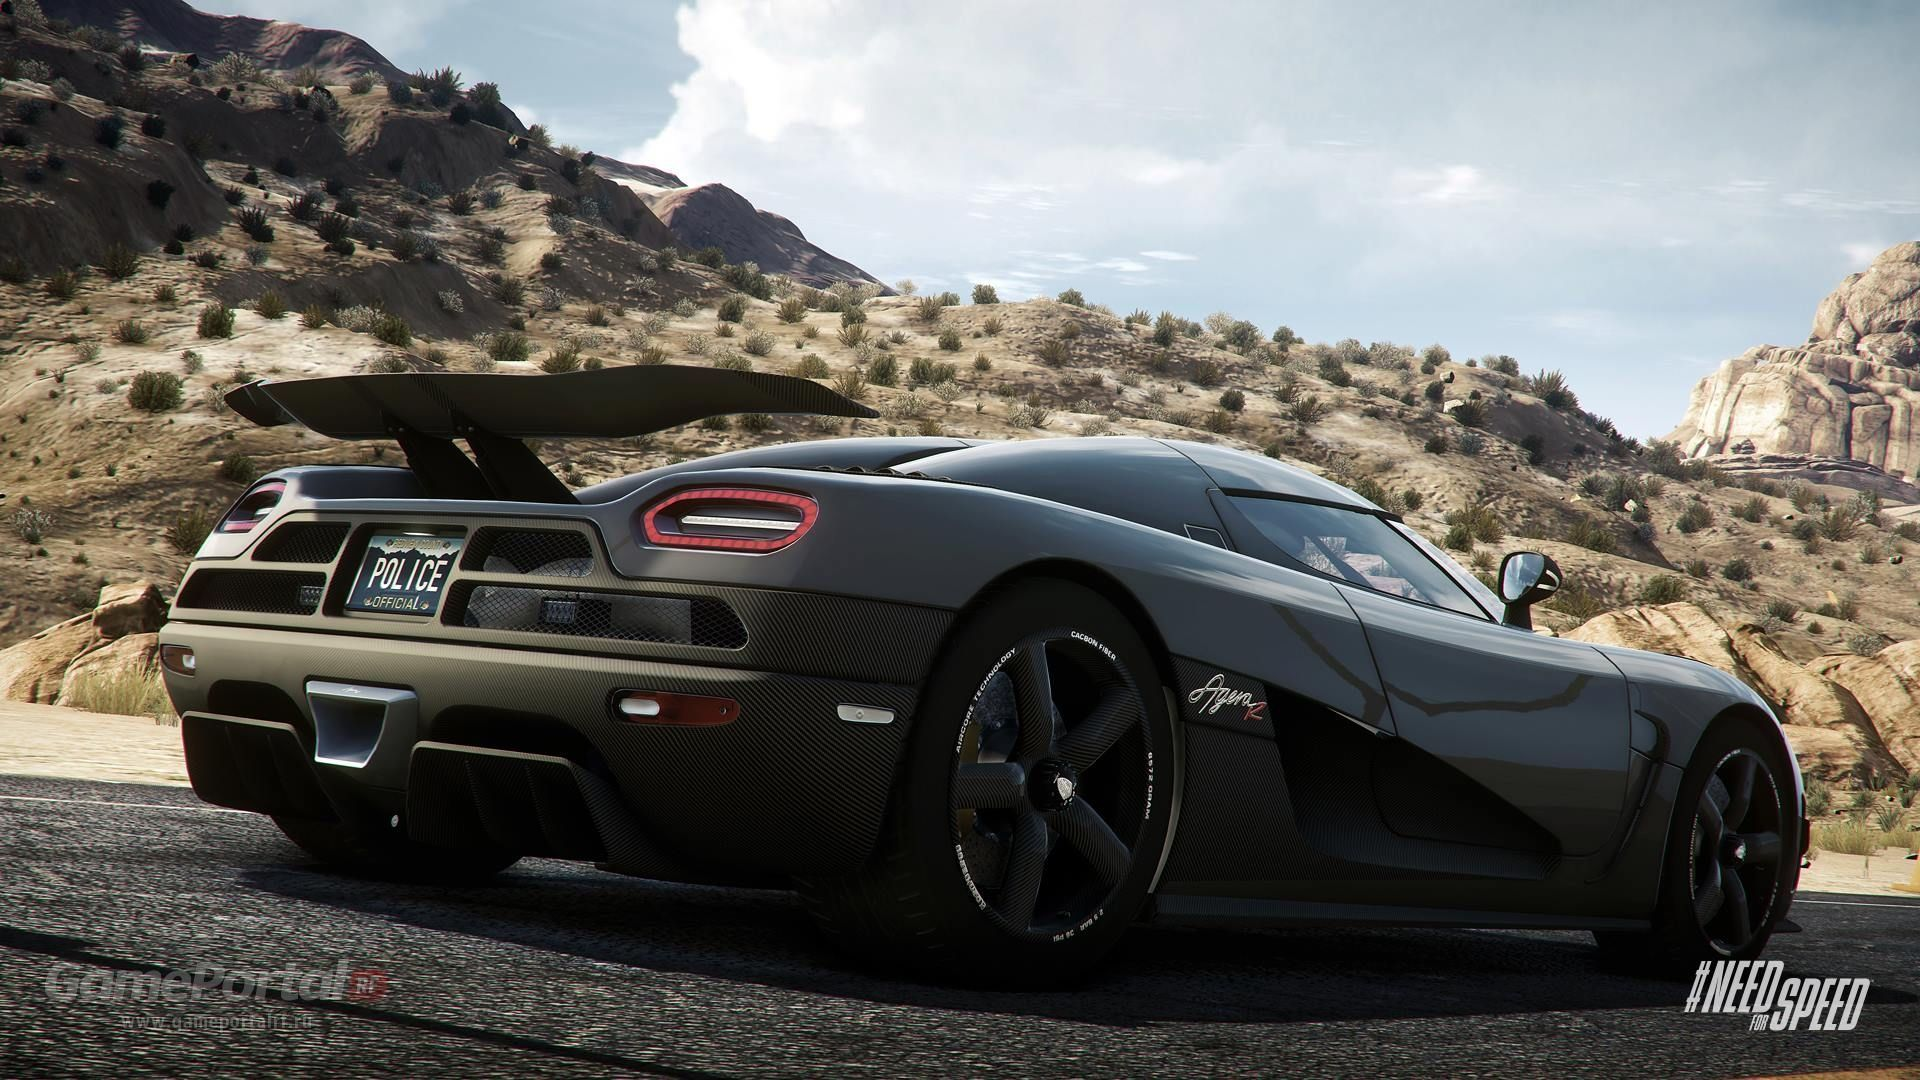 Pin By Cokakshay Raghav On Nfs Need For Speed Rivals Need For